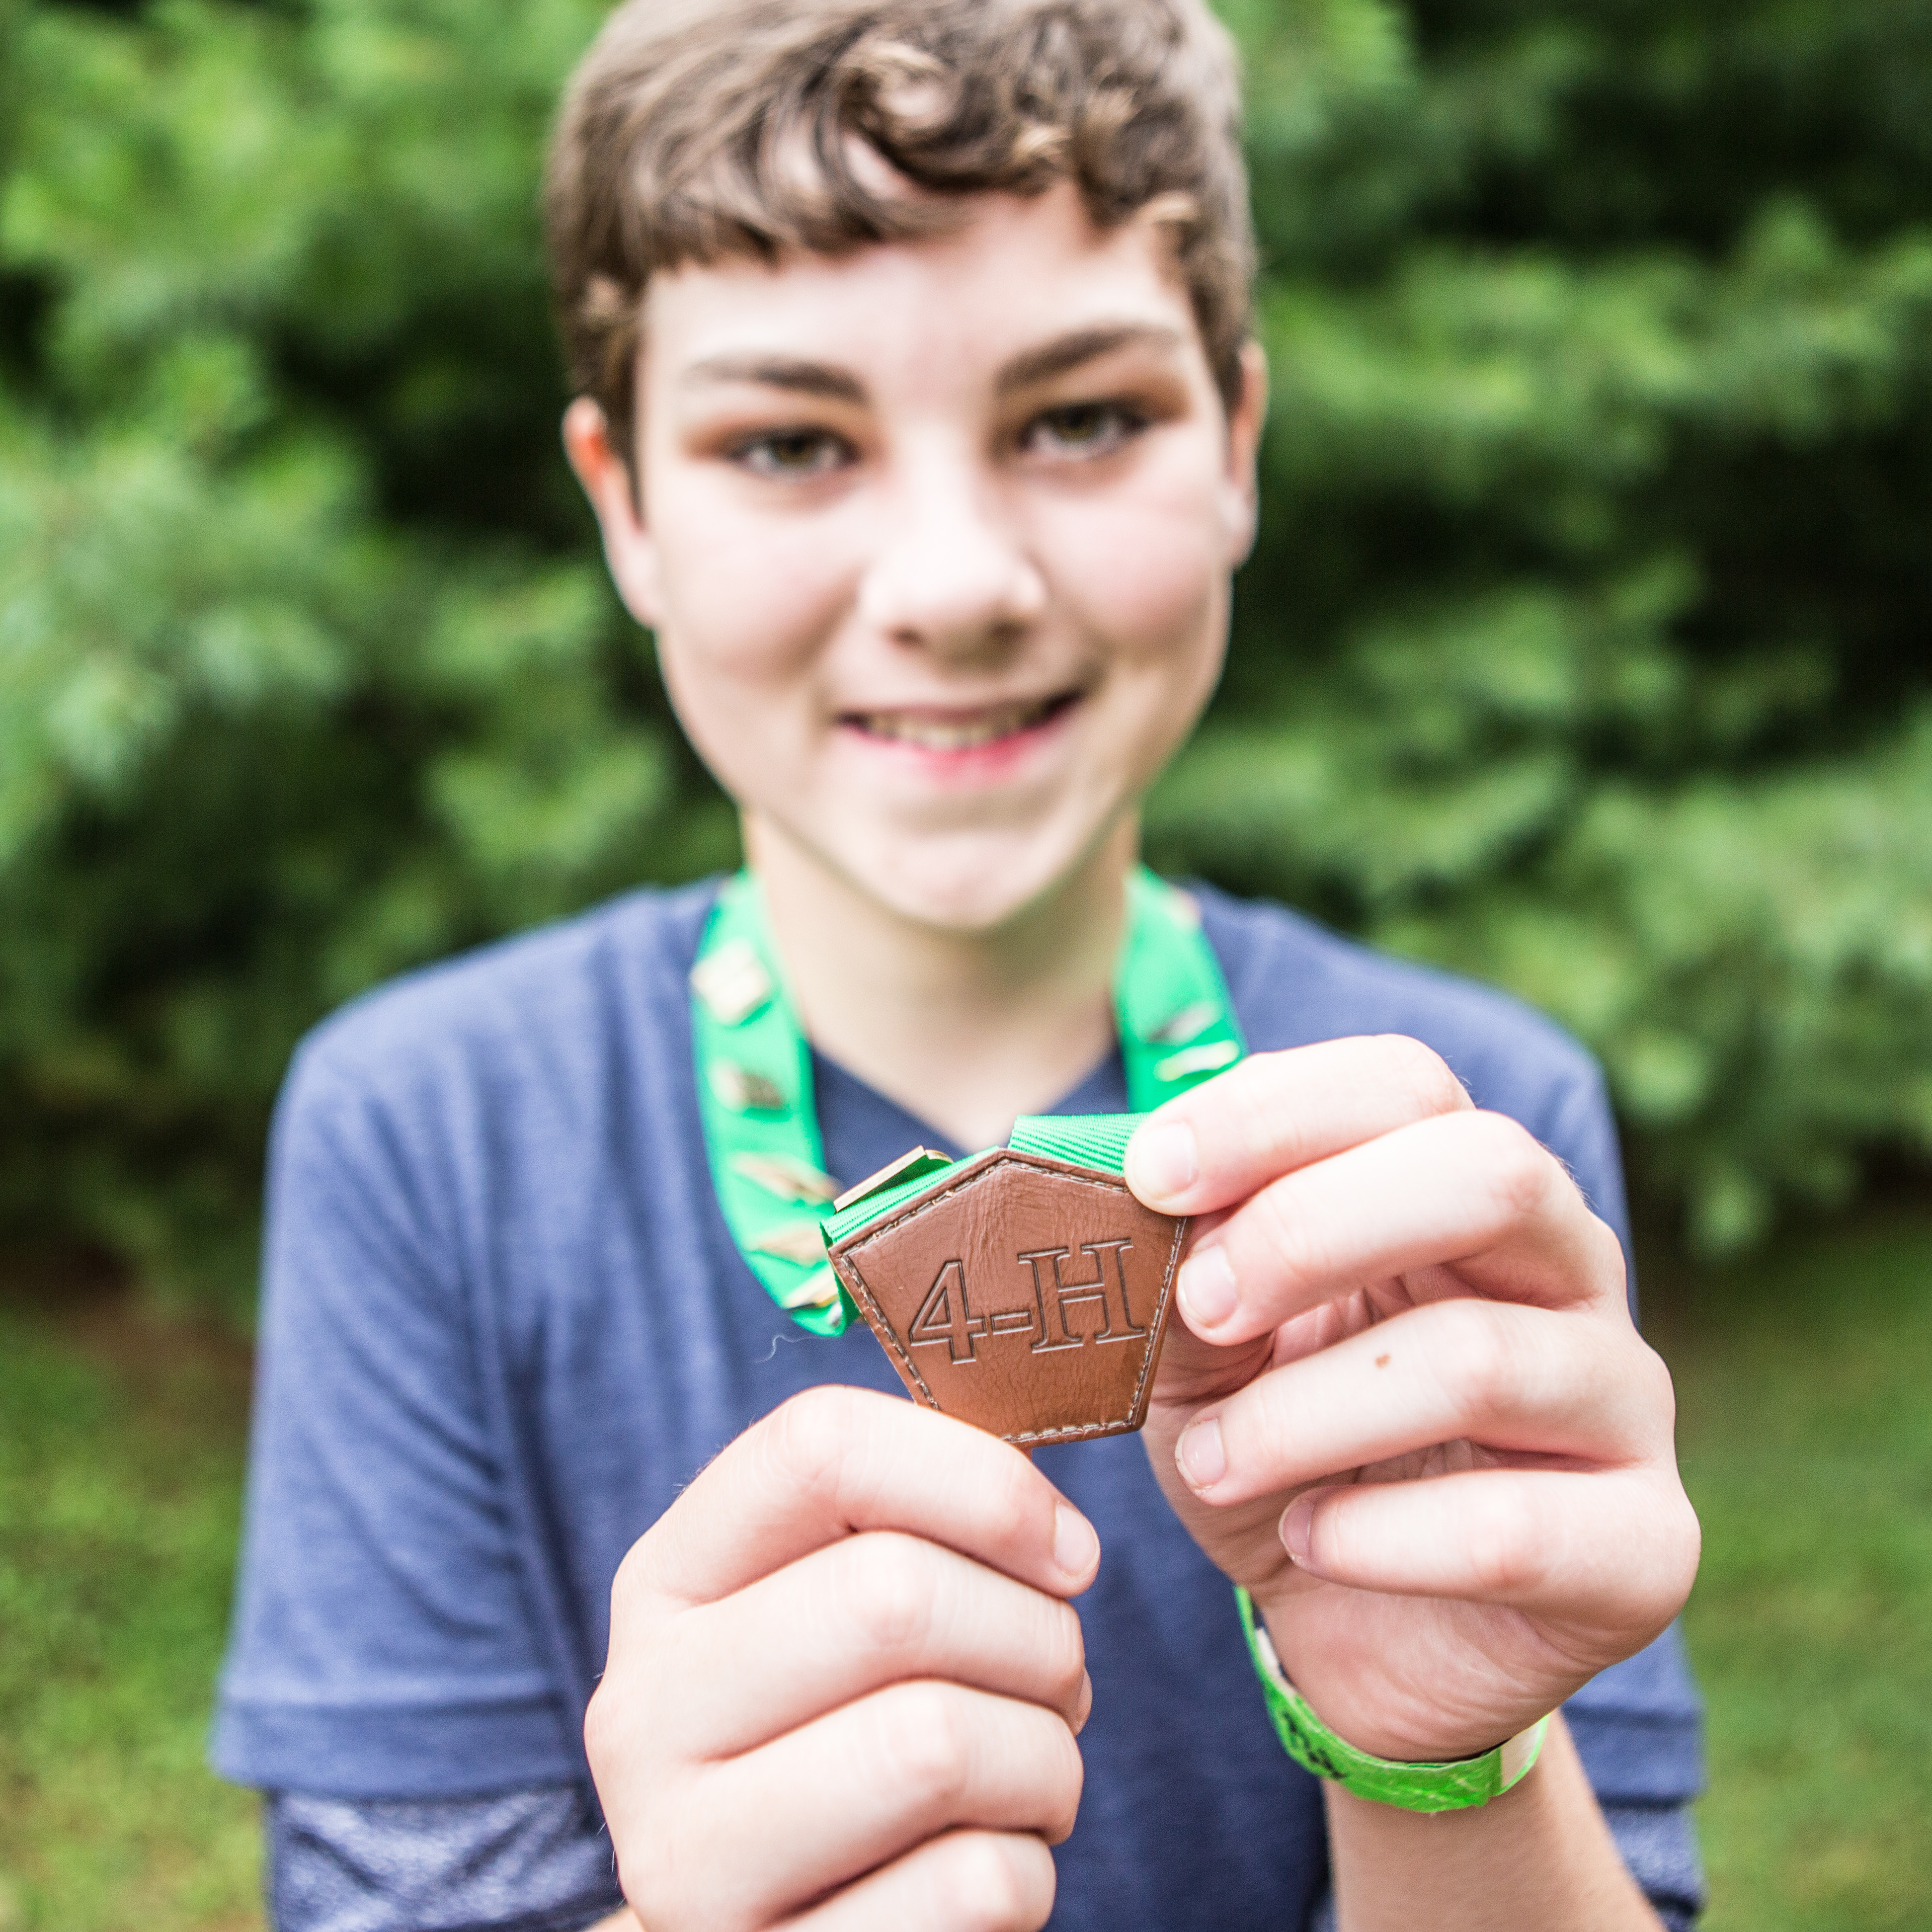 child holding 4-H award